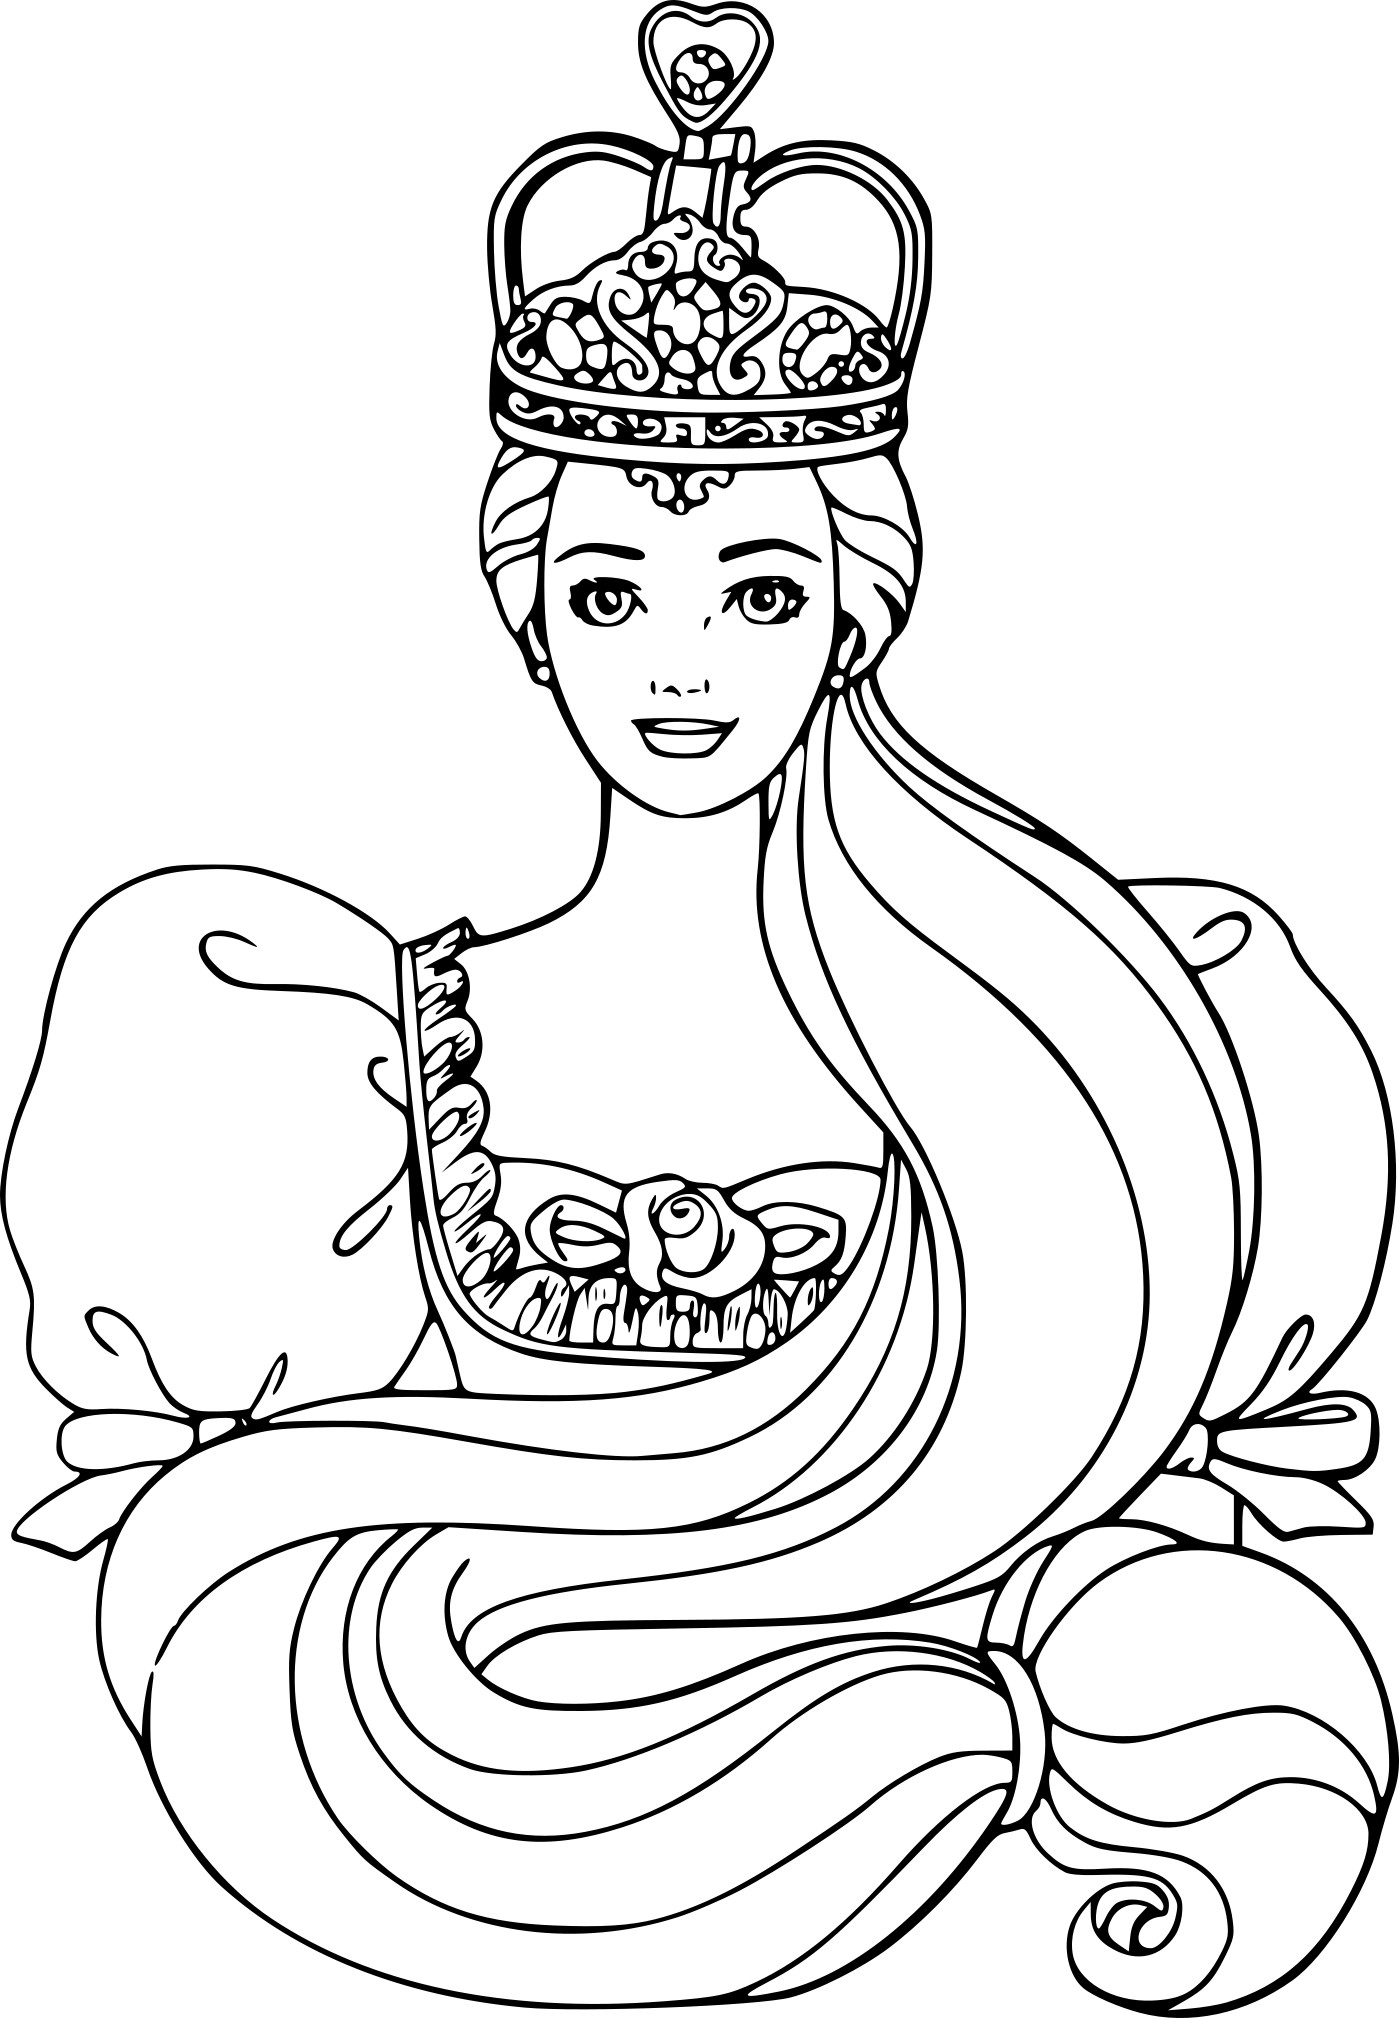 Coloriage barbie princesse disney imprimer gratuit - Barbie princesse coloriage ...